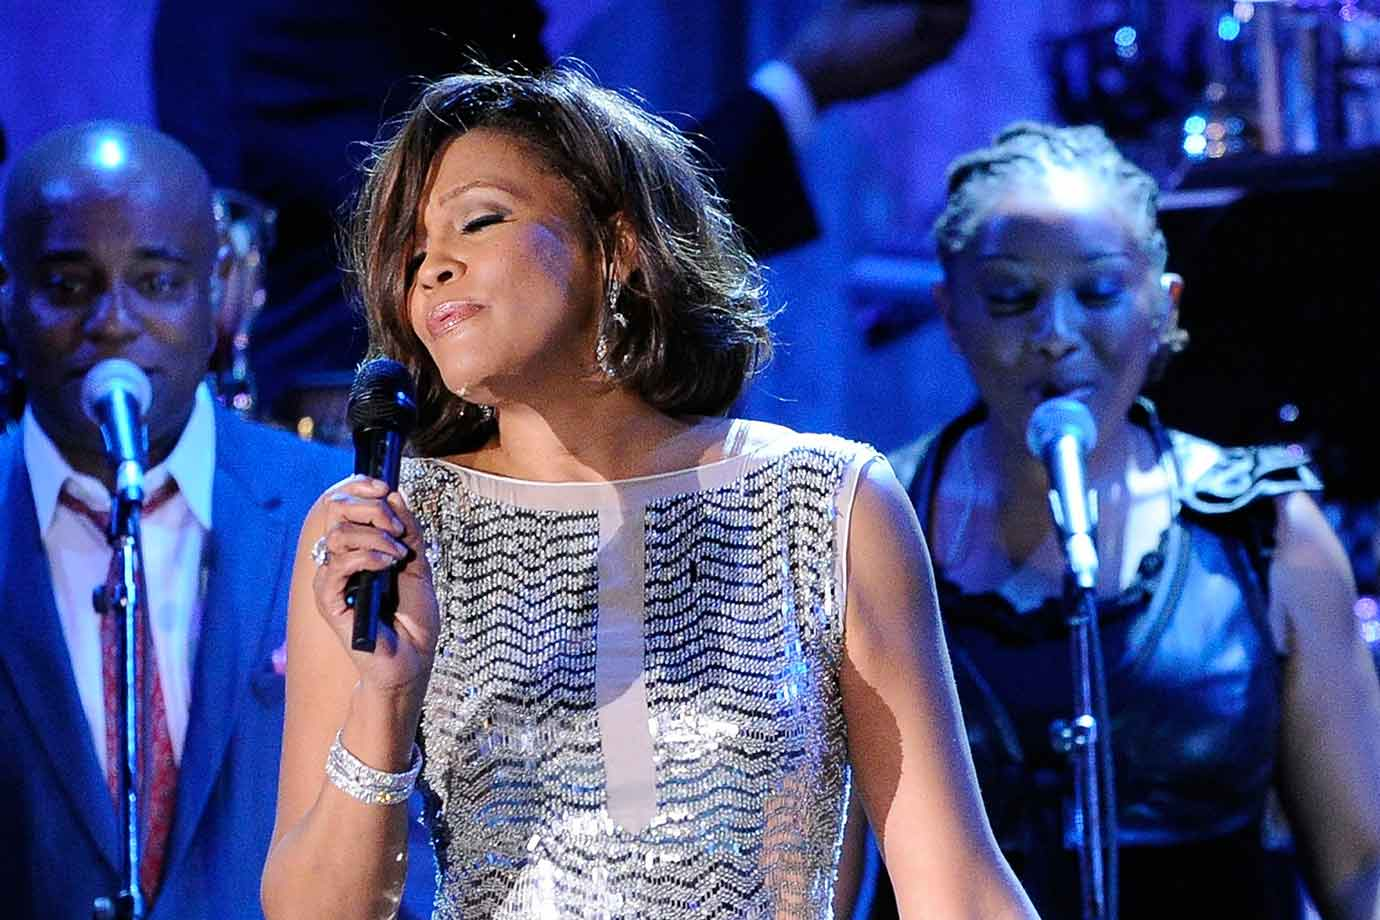 Cannes documentary: Whitney Houston was molested by Dee Dee Warwick